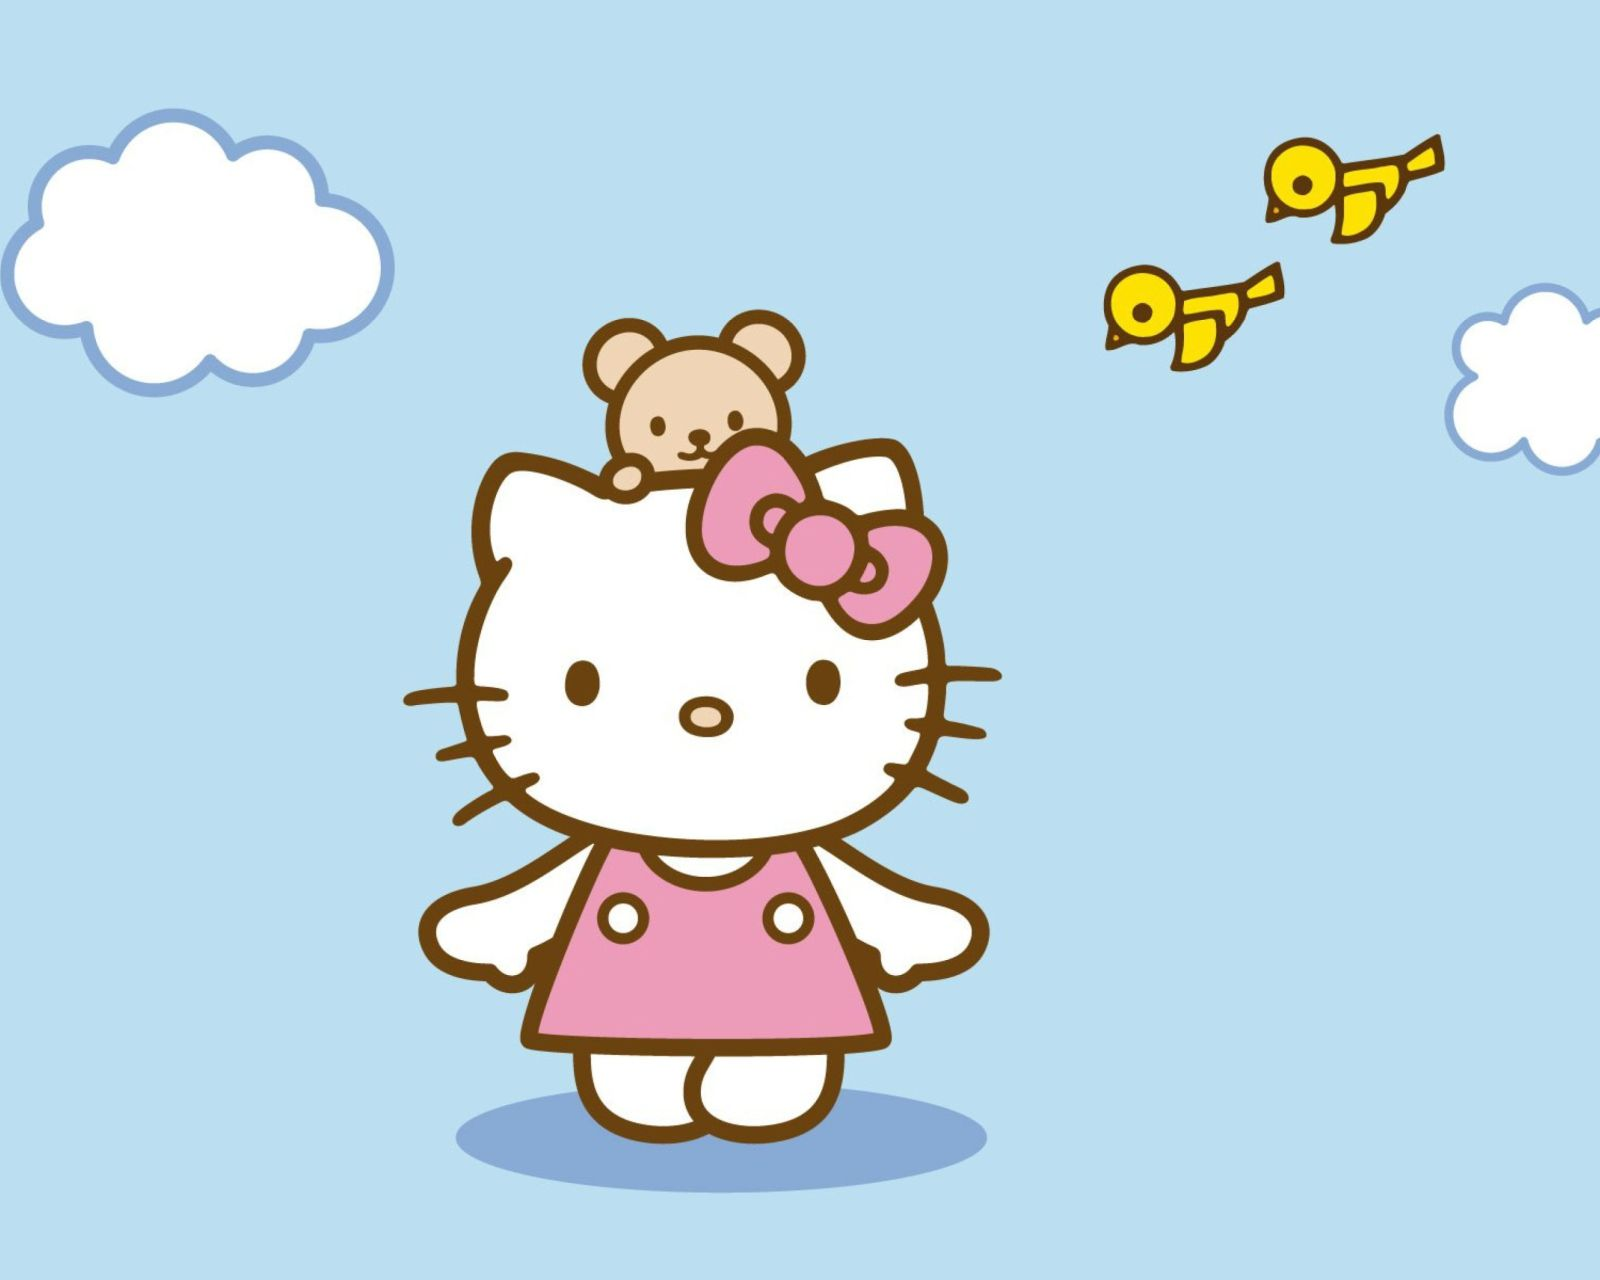 Most Inspiring Wallpaper Hello Kitty Samsung Galaxy - 6d54e3f525bb58a13677c81d849176bd  Photograph_804316.jpg